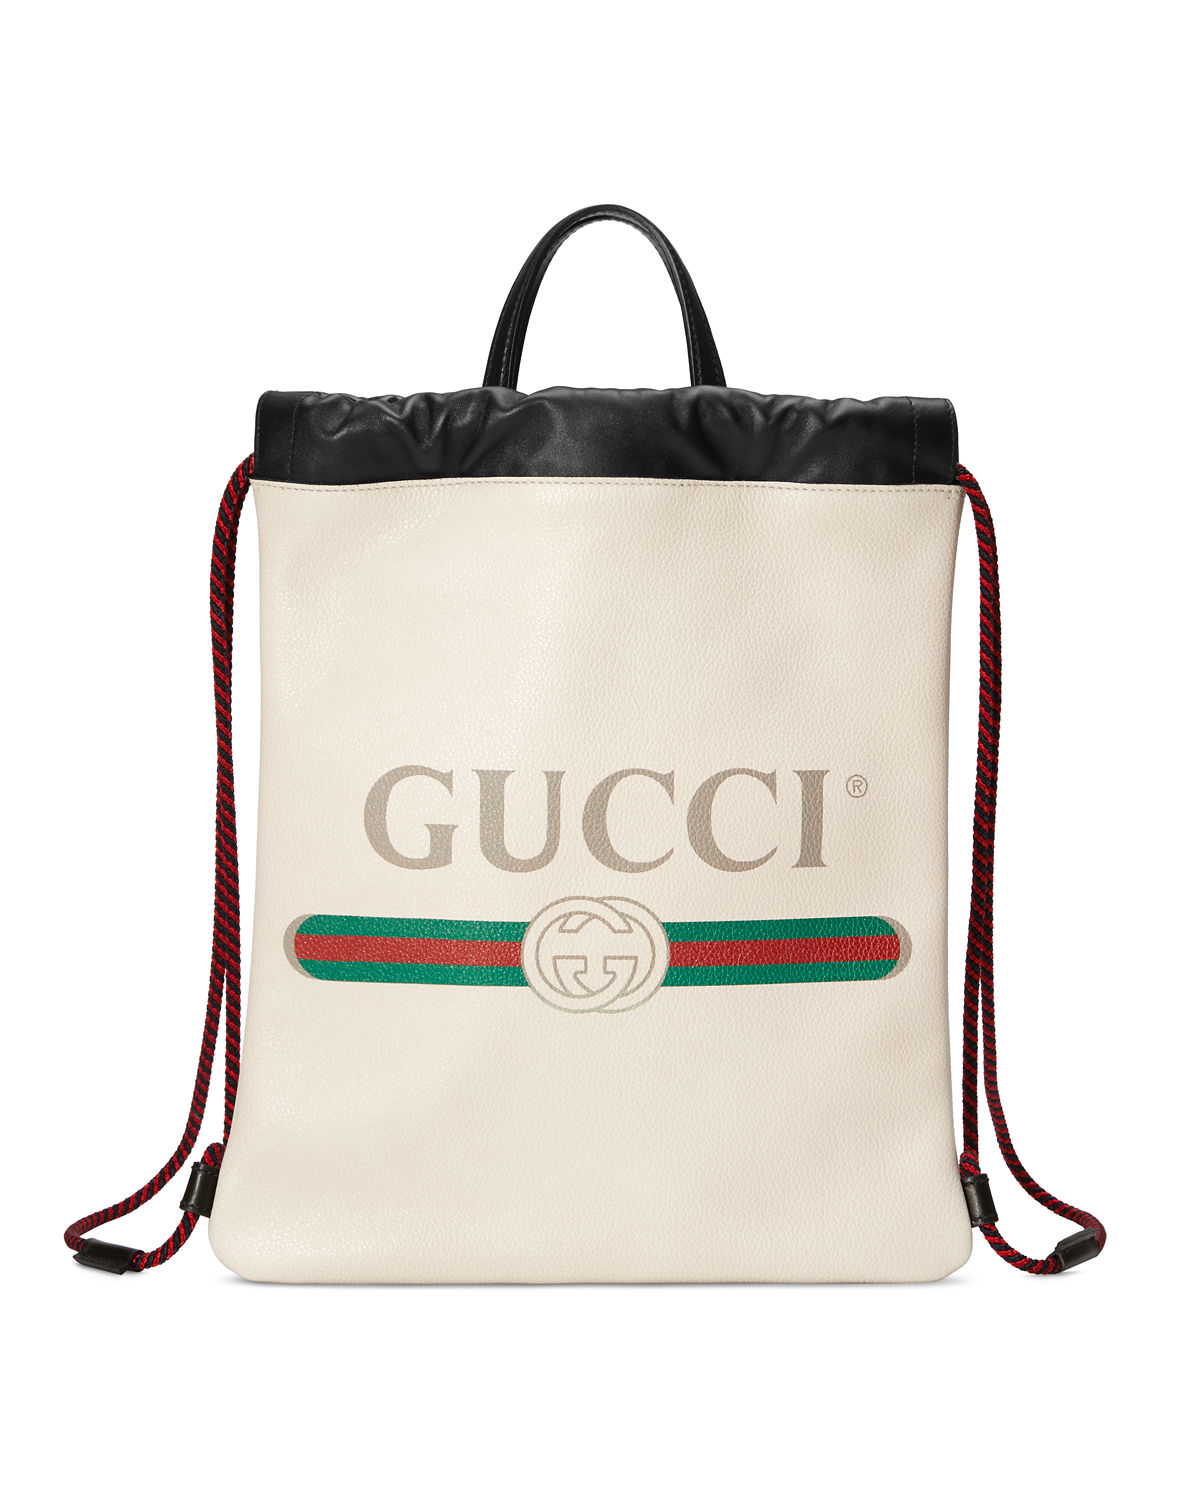 3b7371408c83 Gucci Gucci-Print Small Drawstring Backpack